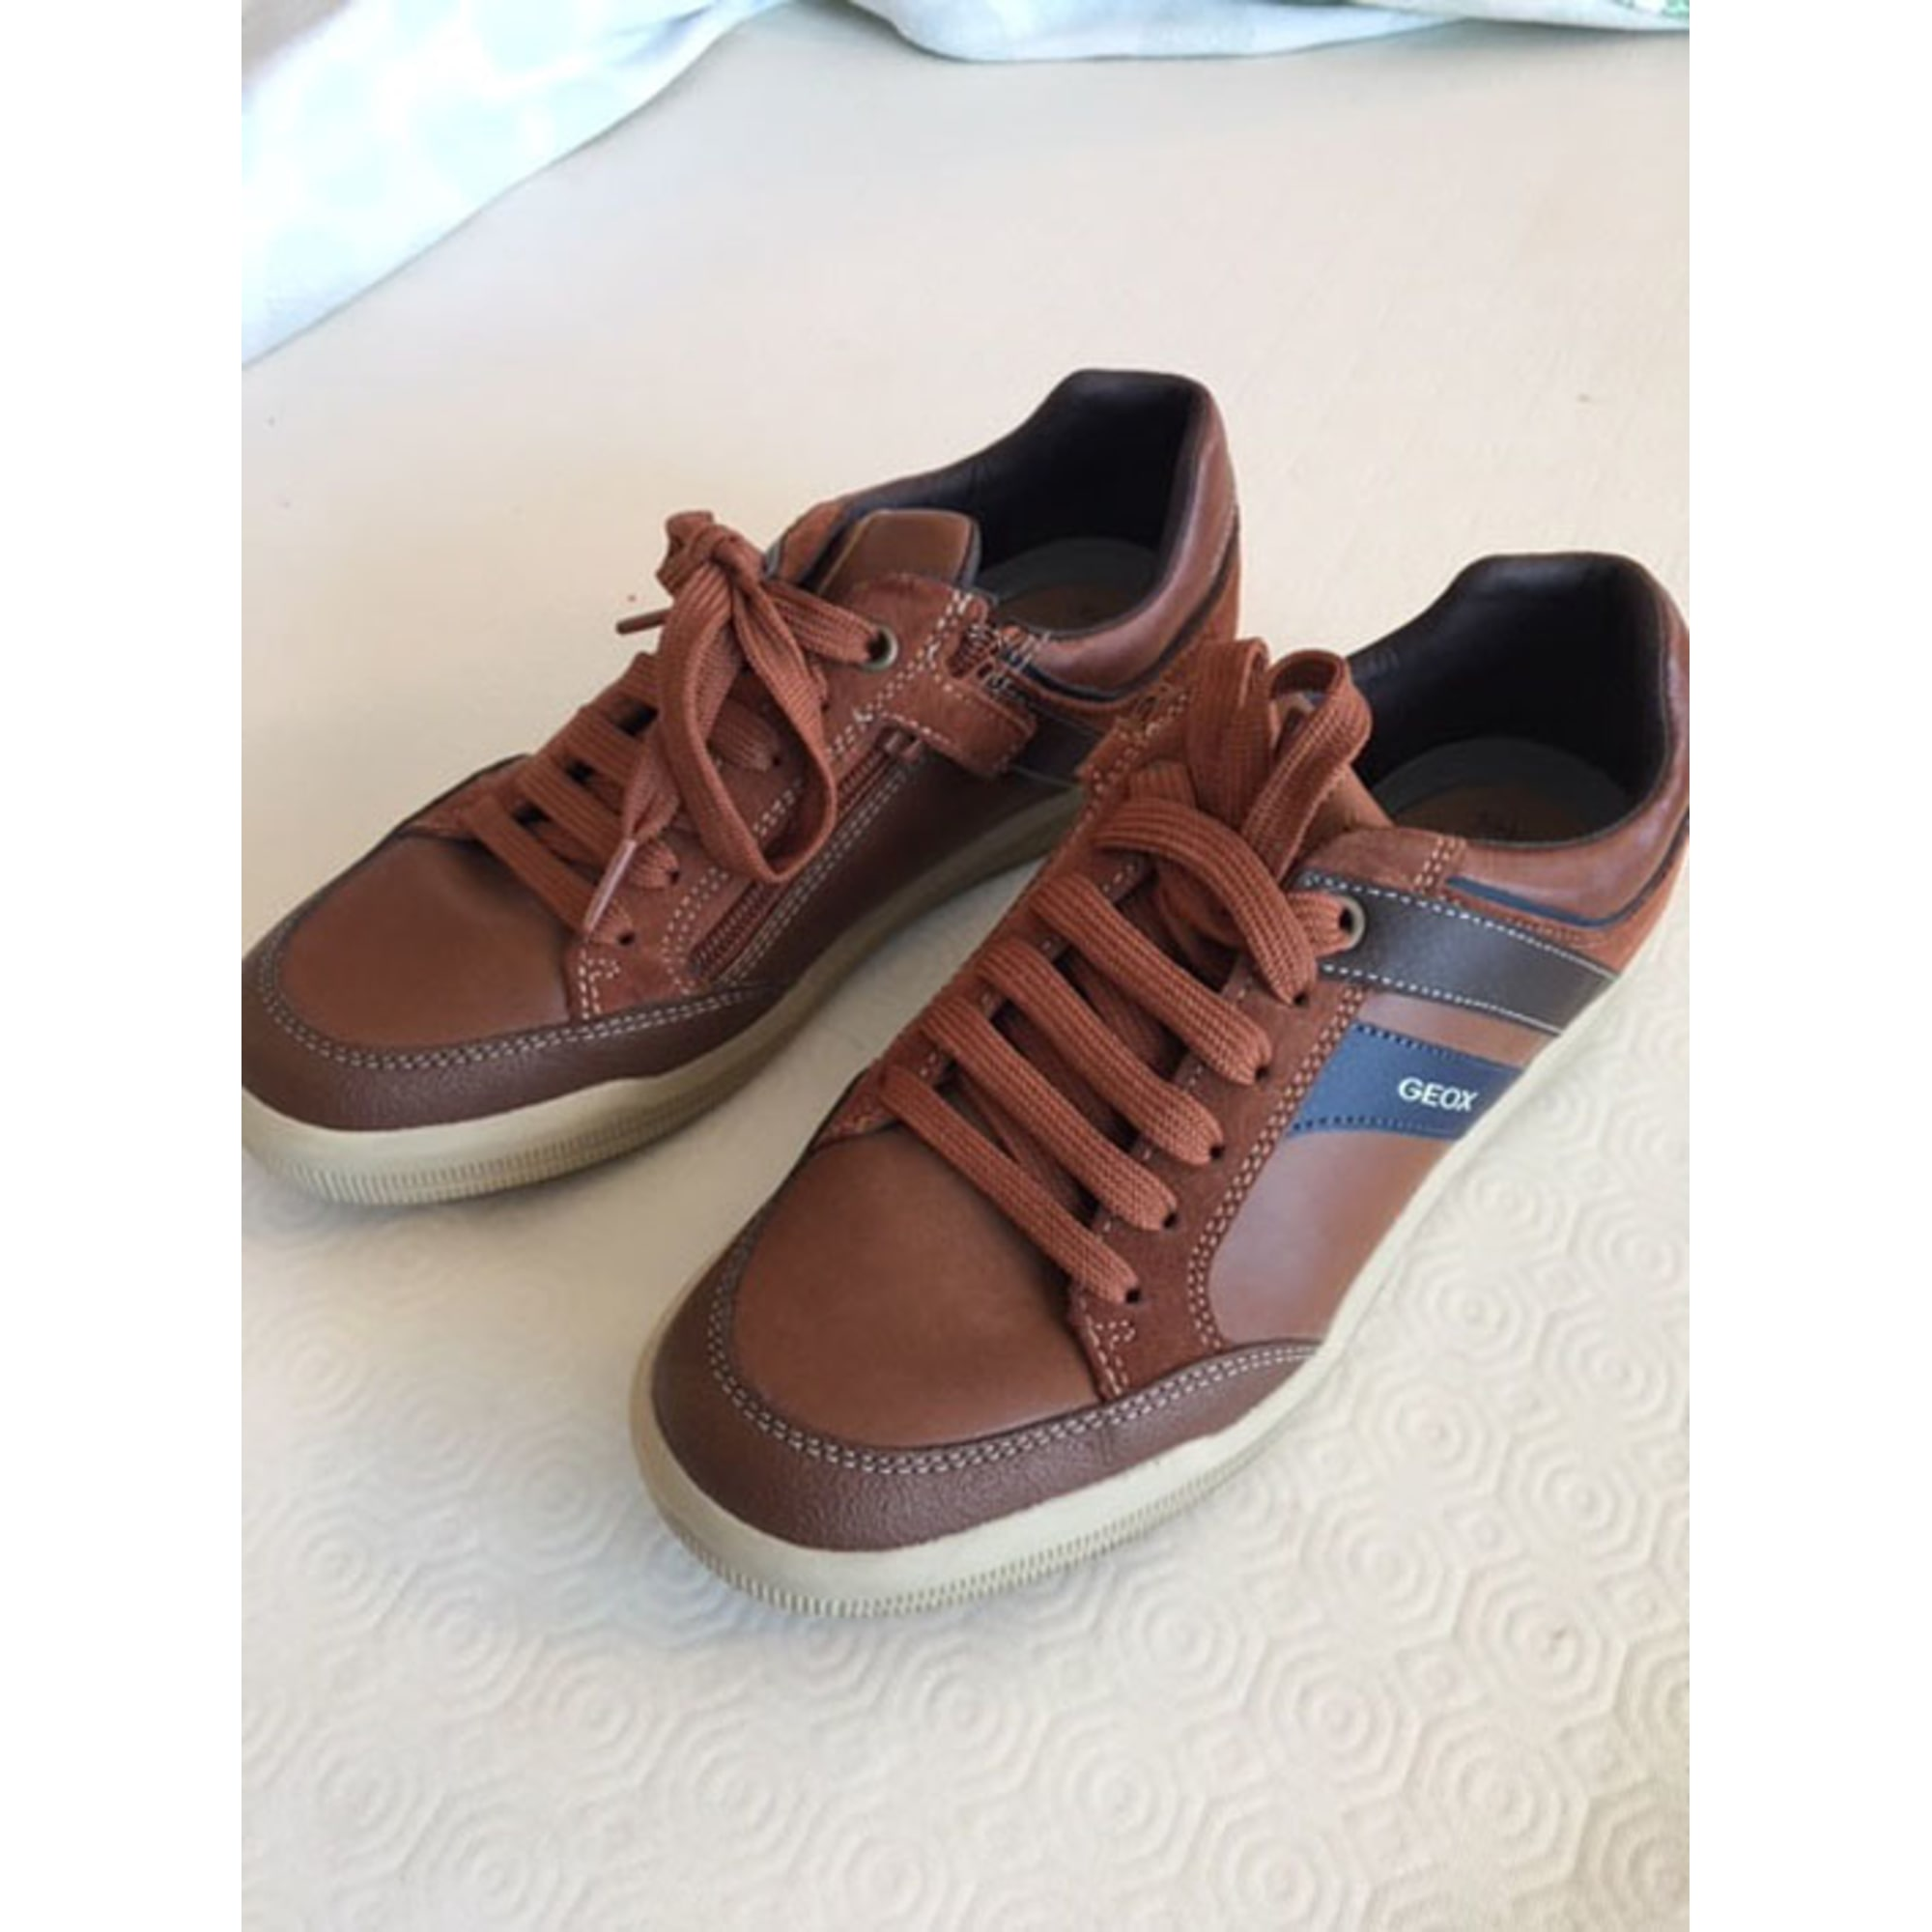 Chaussures à lacets GEOX 39 marron - 8374651 f713aa86598c